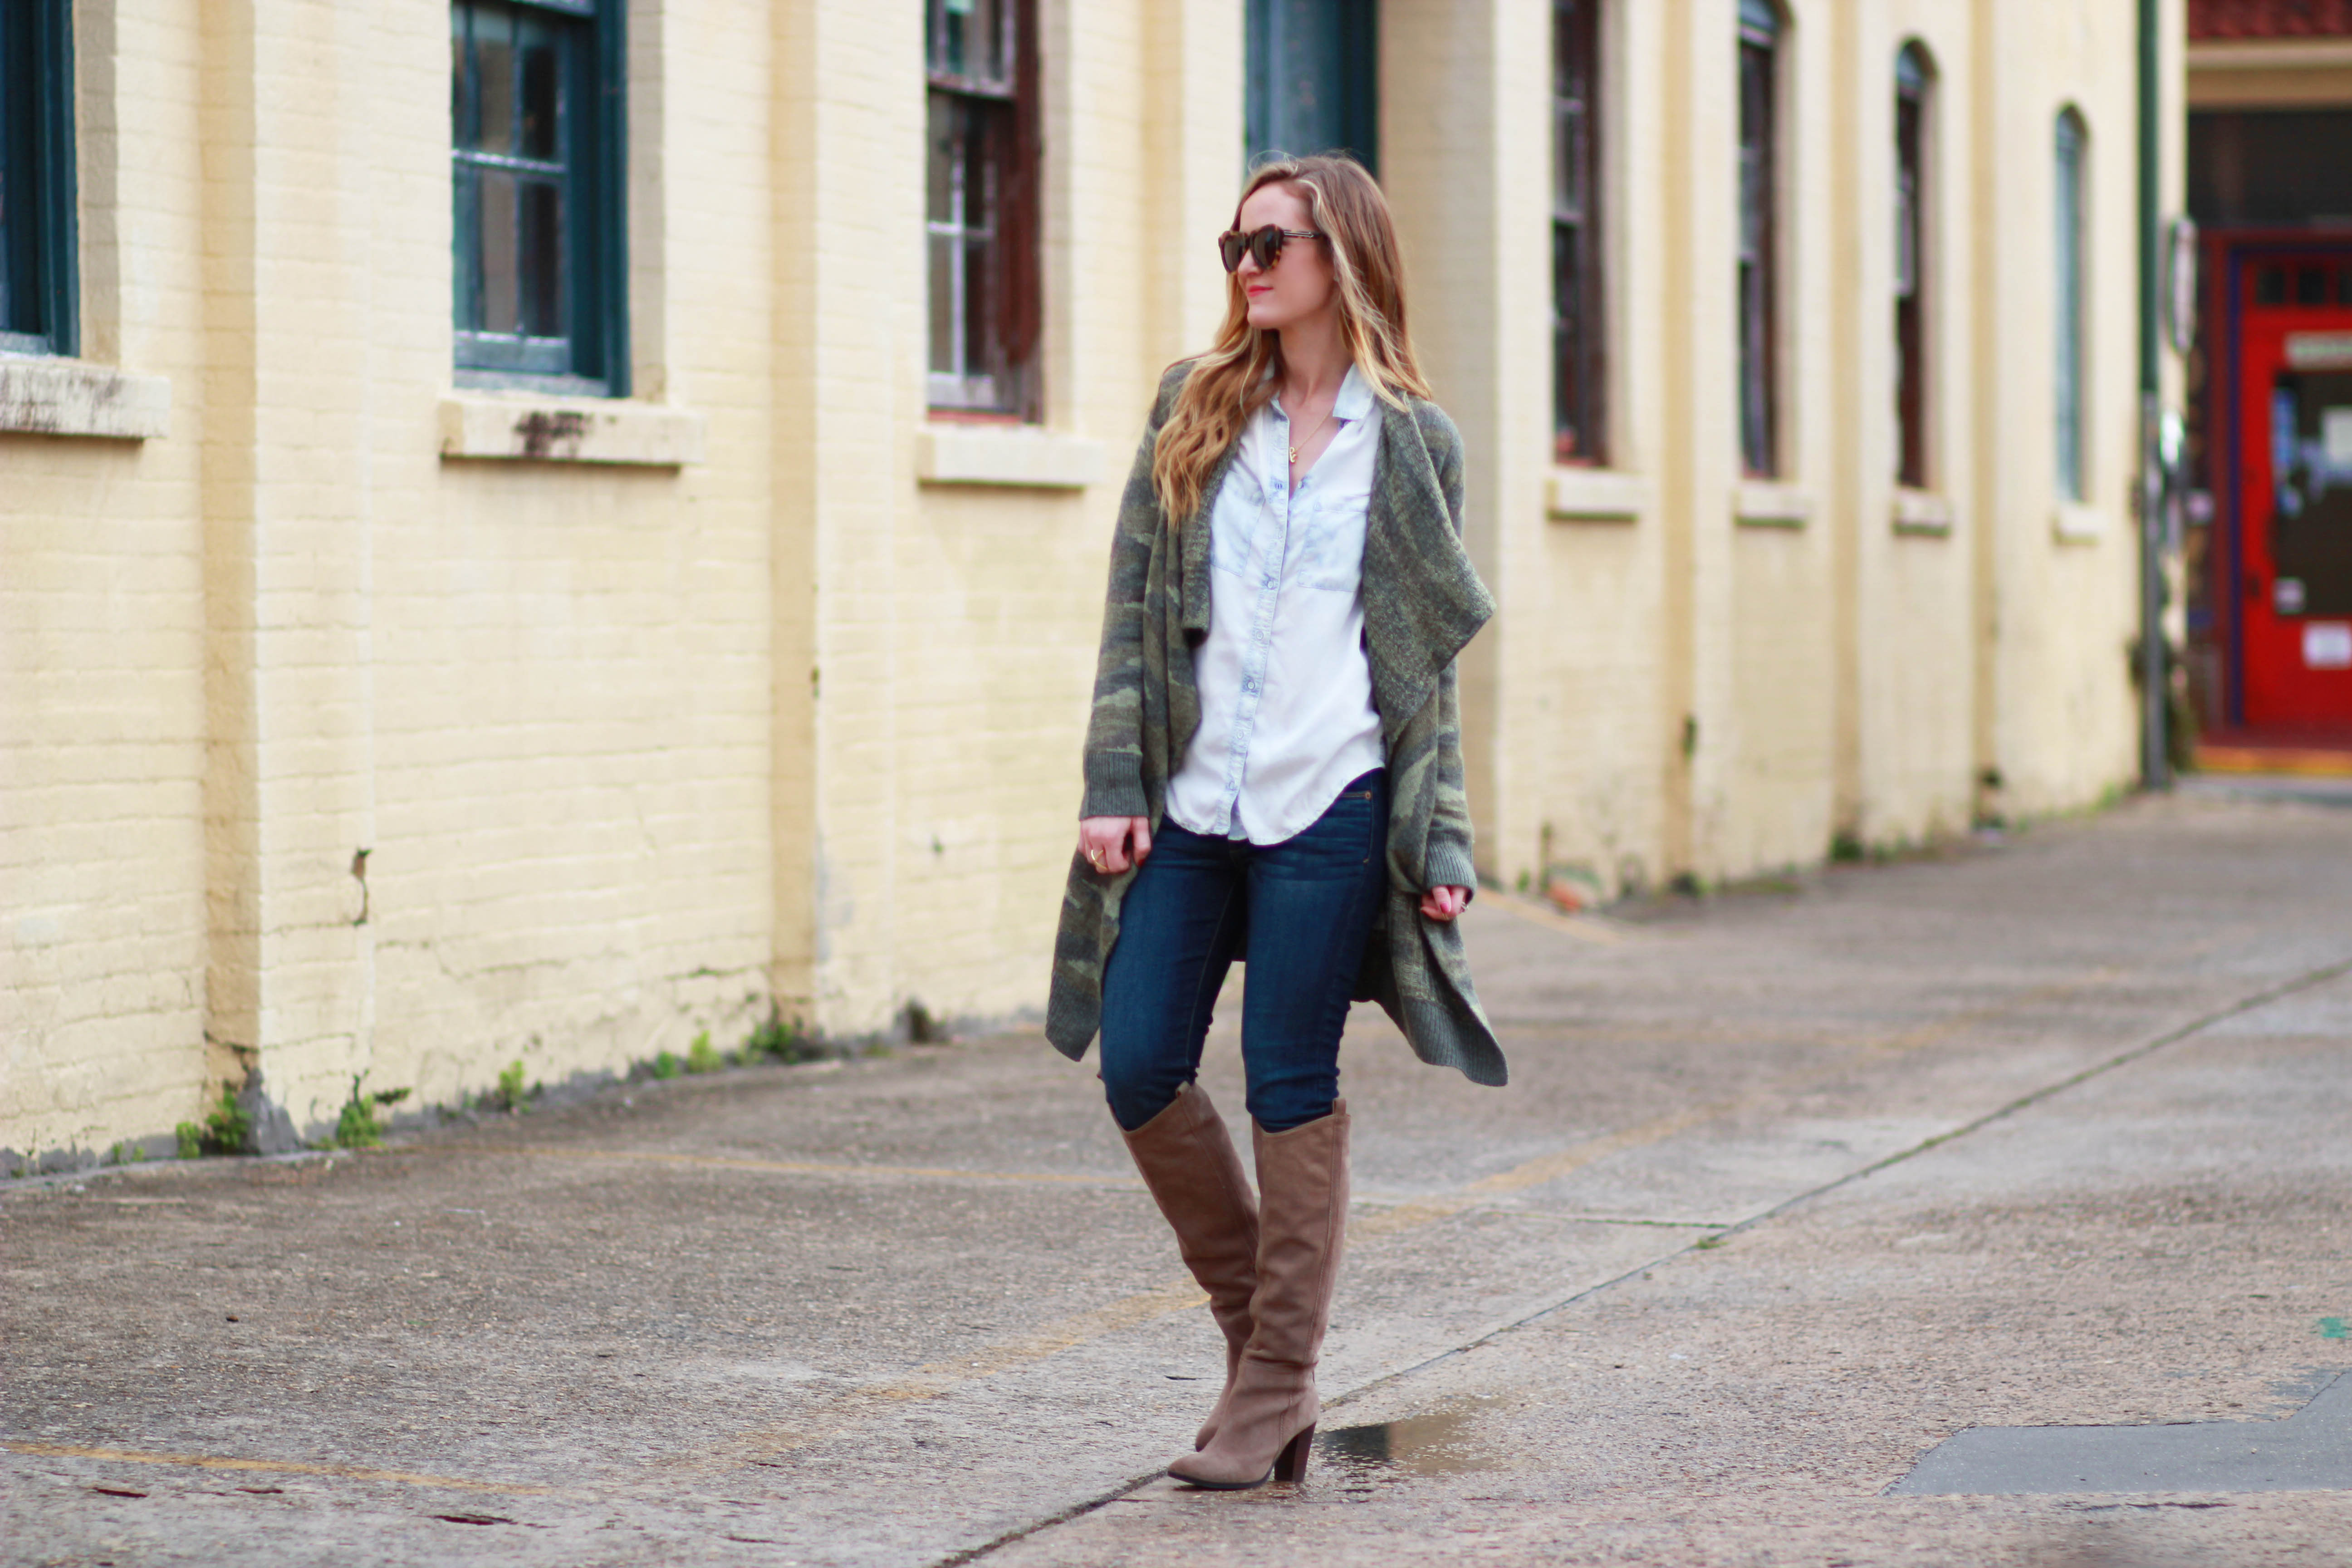 orlando, florida styles aeropostale camo sweat, chambray shit, dolce vita boots, and karen walker sunglasses for a casual winter outfit